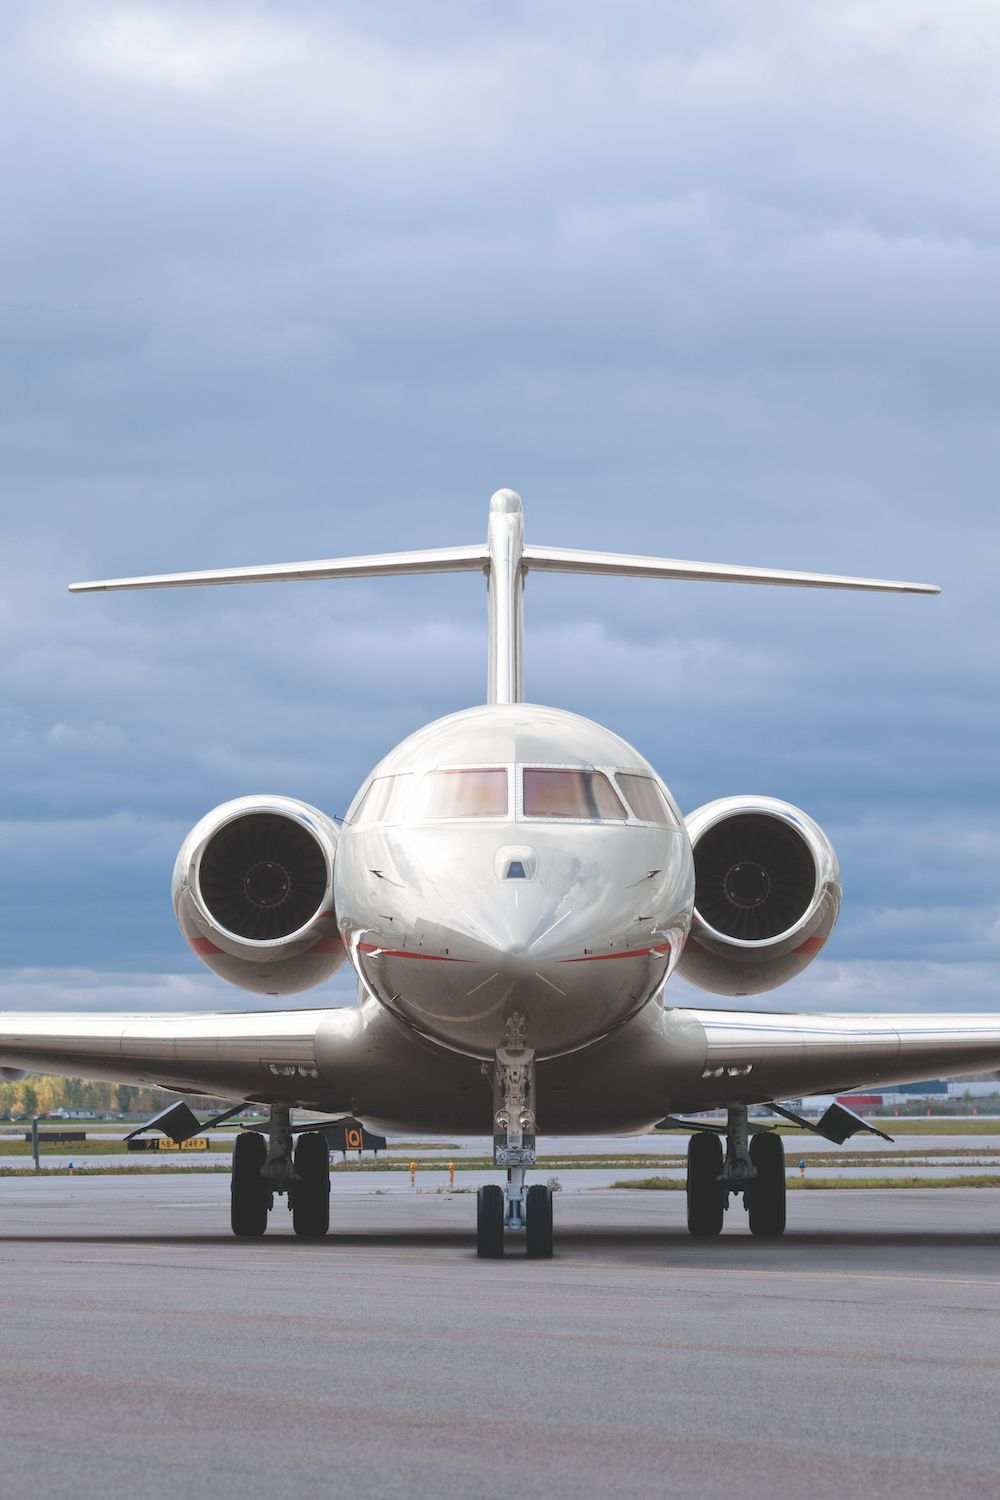 Image courtesy VistaJet